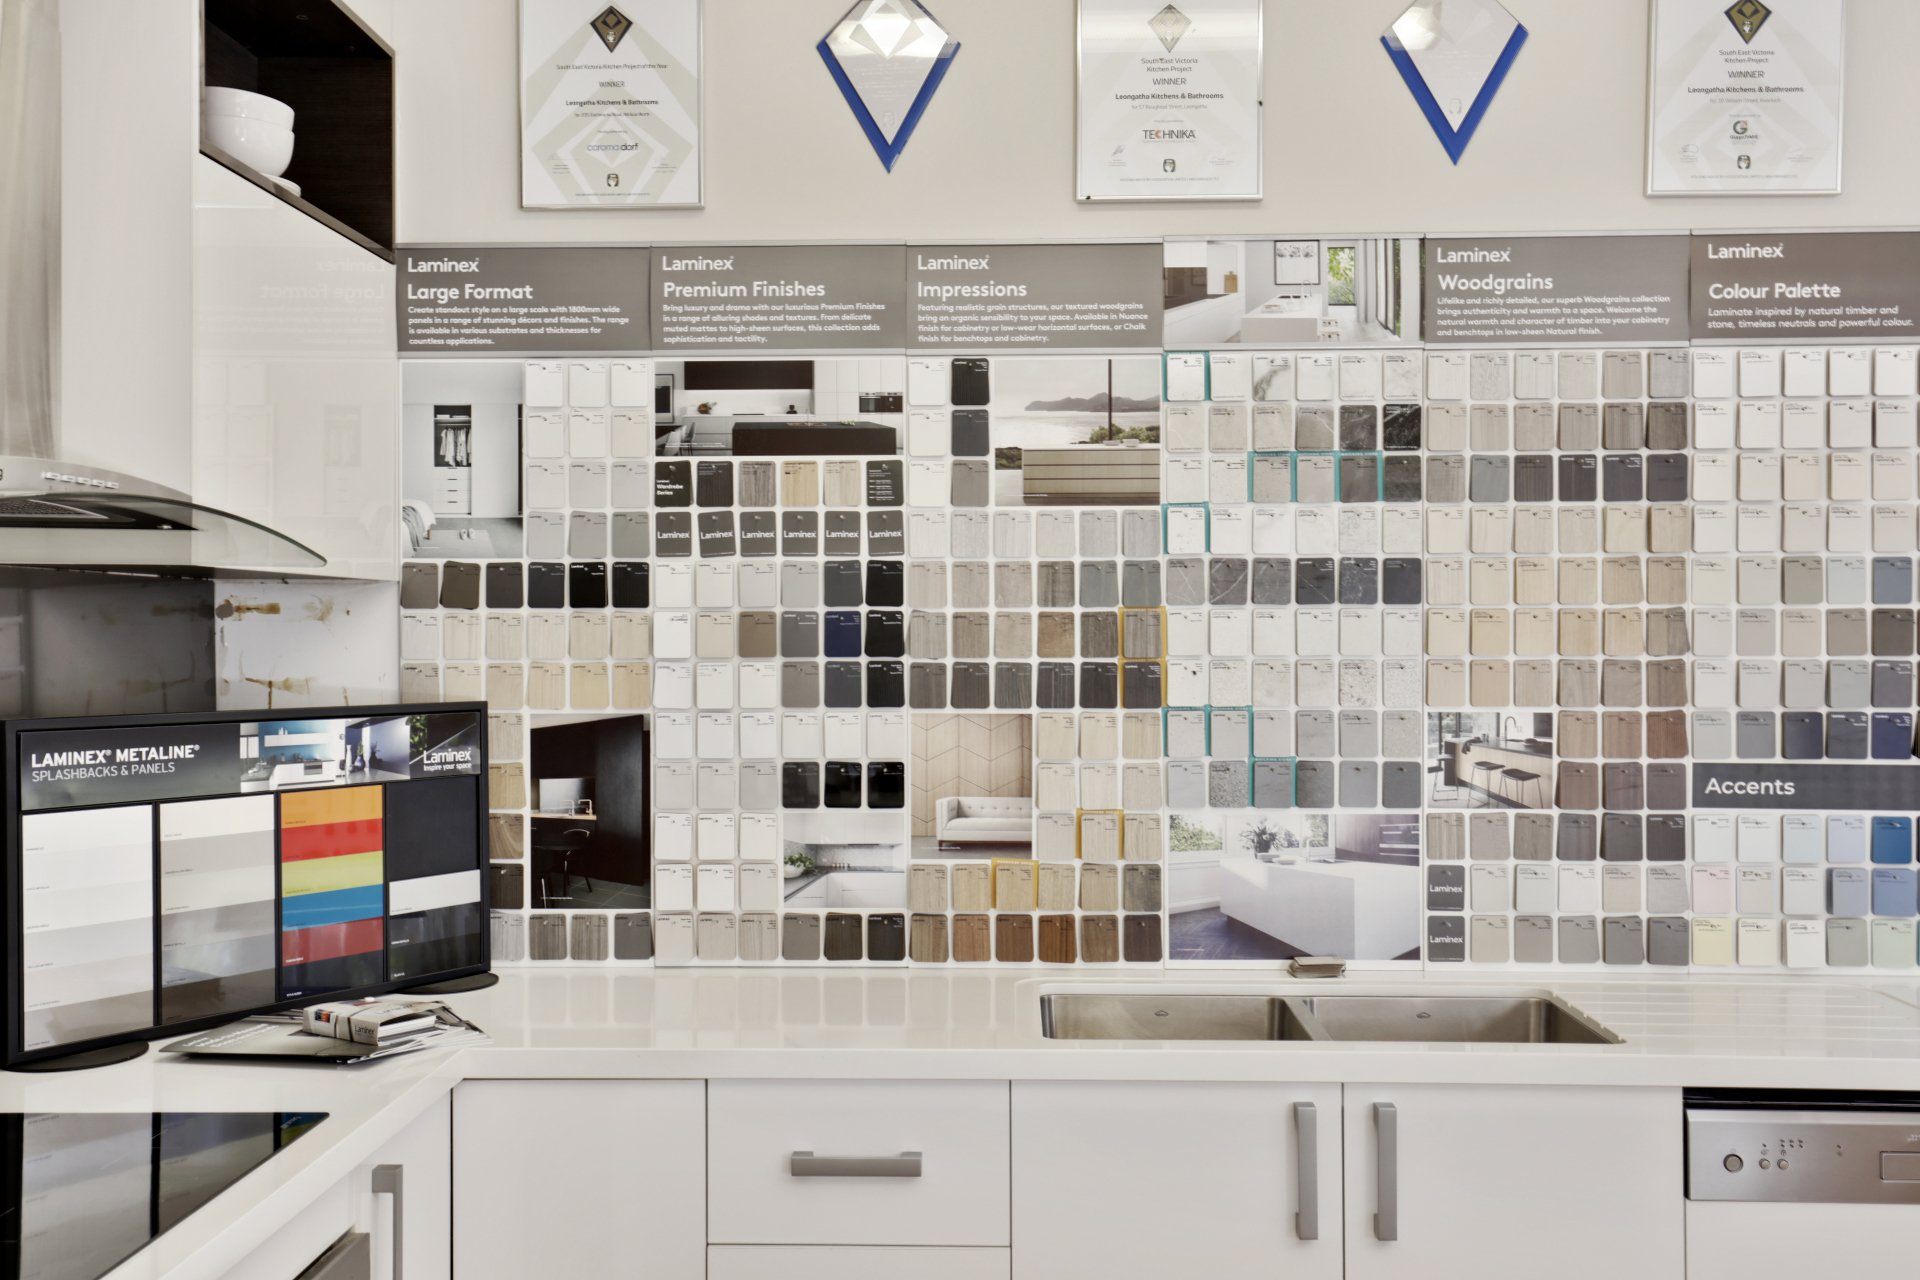 Cabinets are definitely one thing to get serious about when remodeling your kitchen. Your Local Award-Winning Cabinet Maker